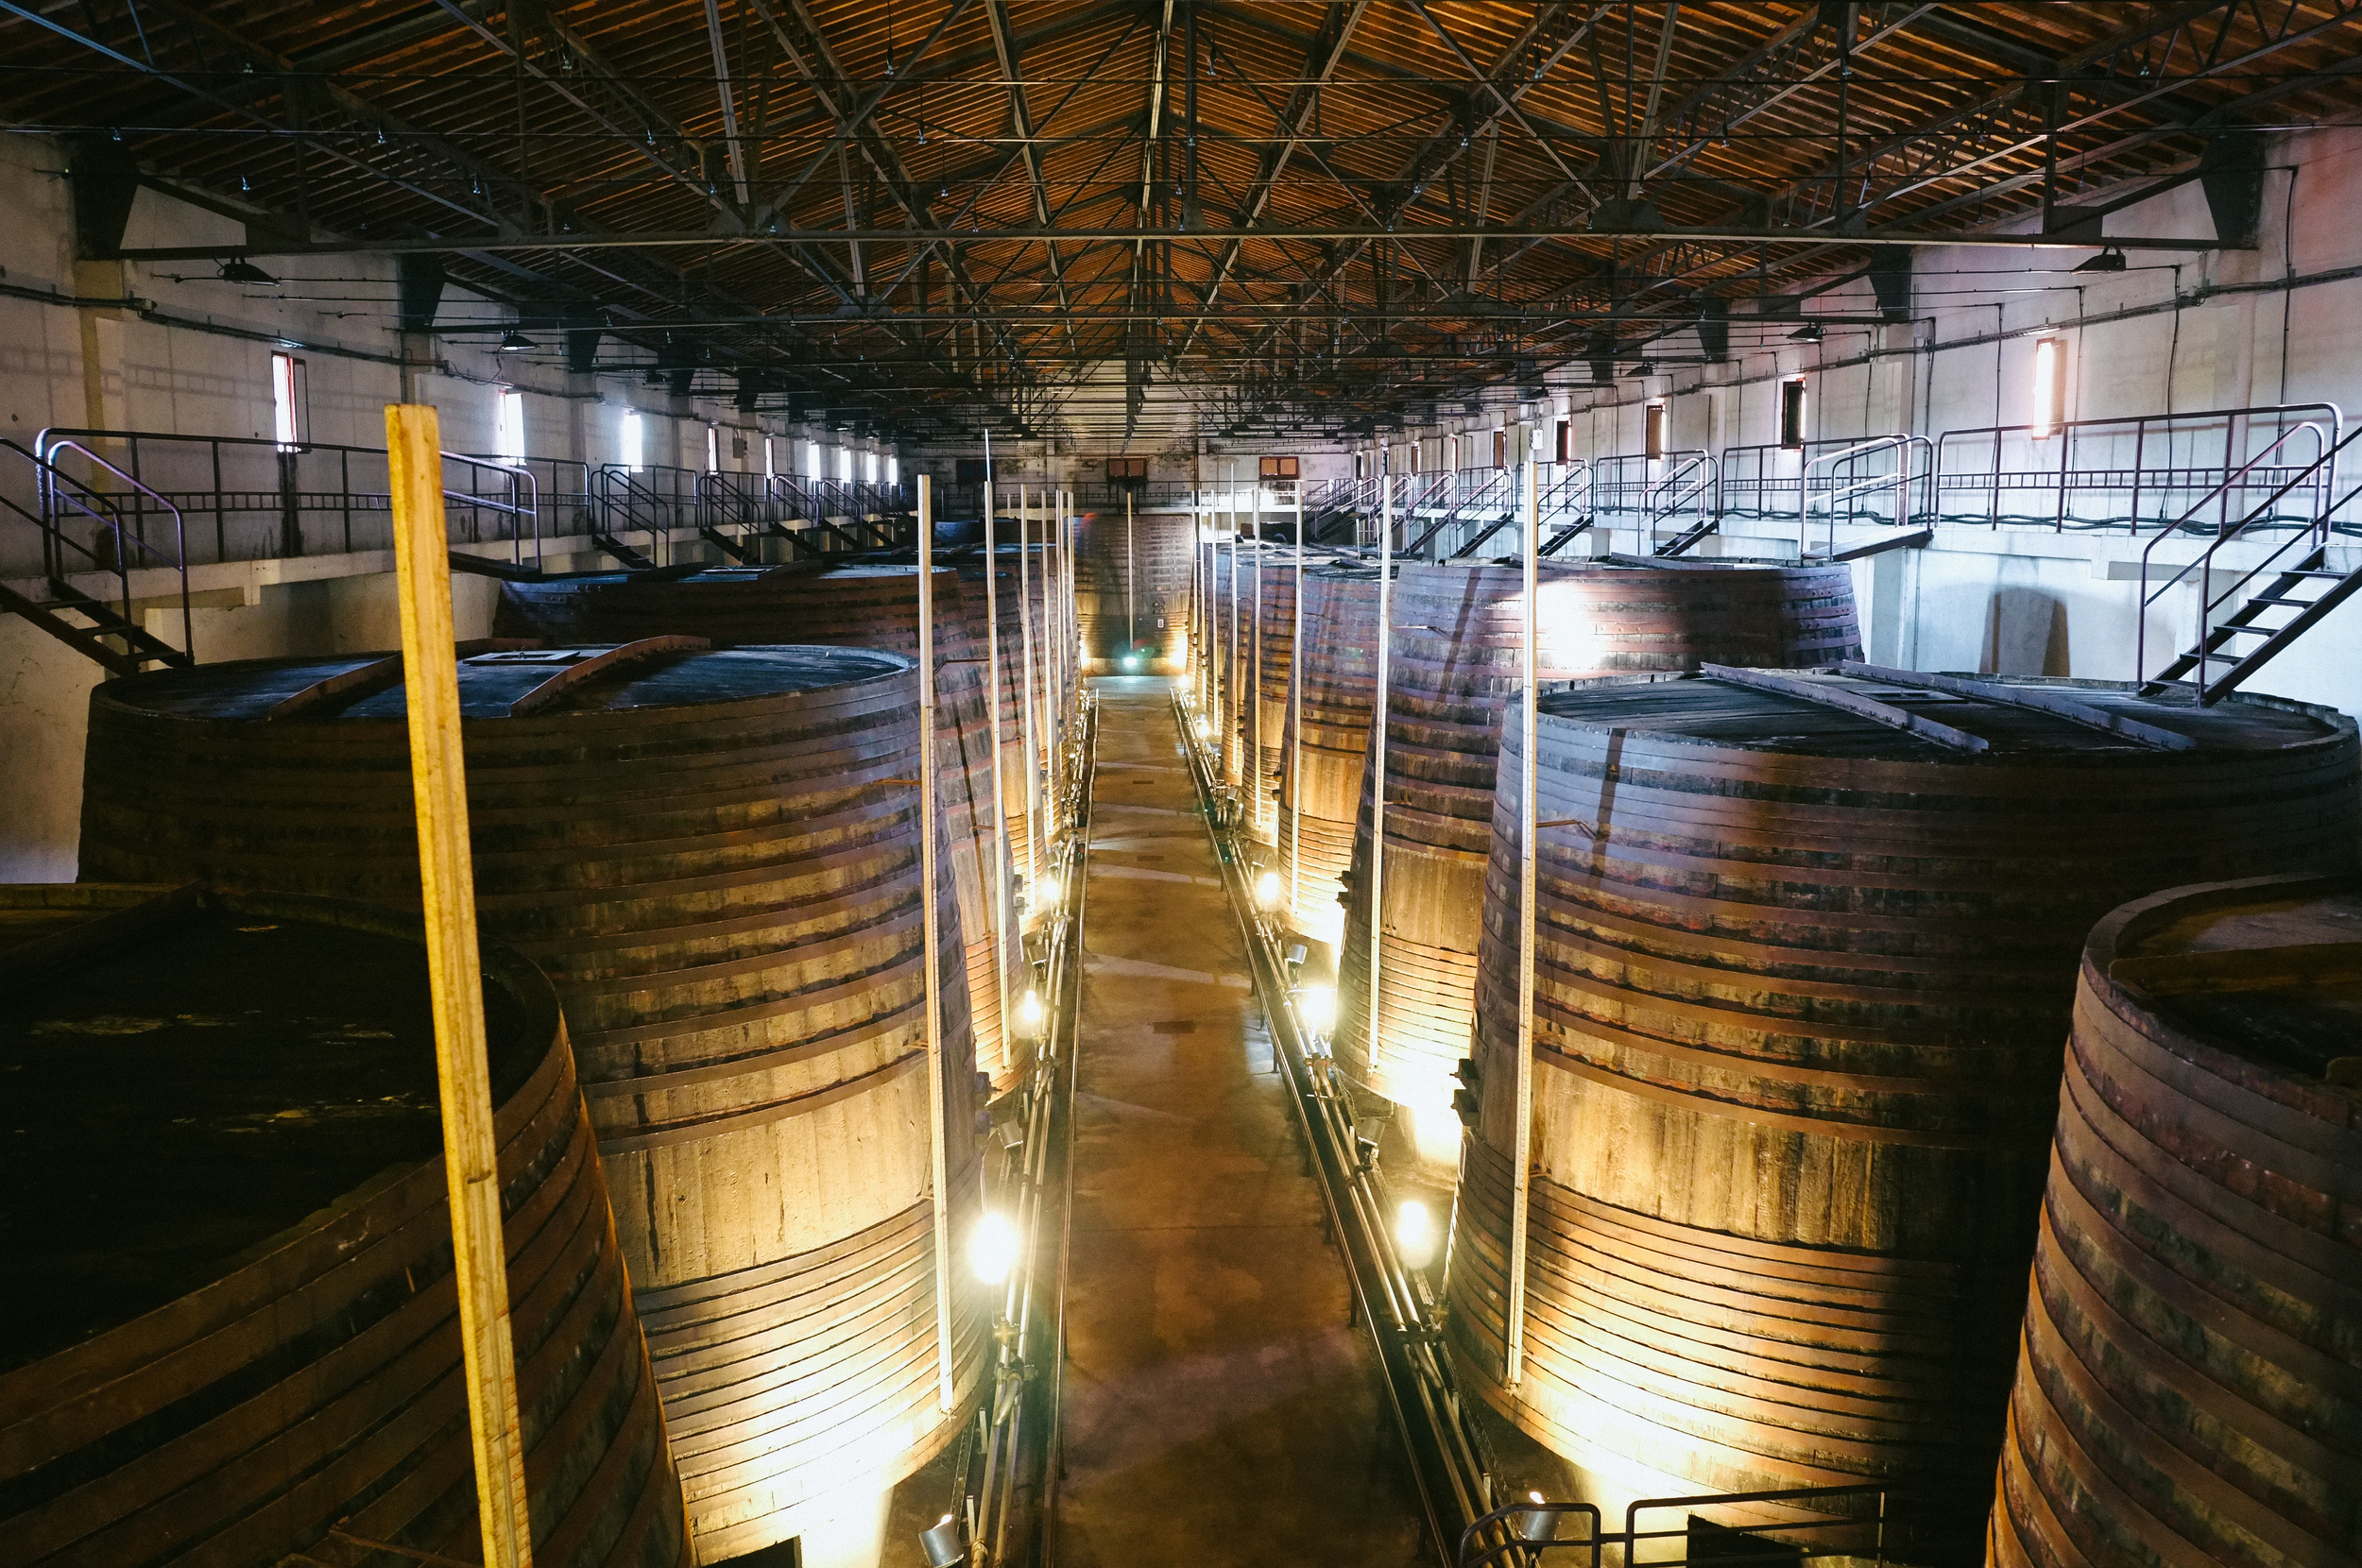 Banyuls aging. And aging. And...